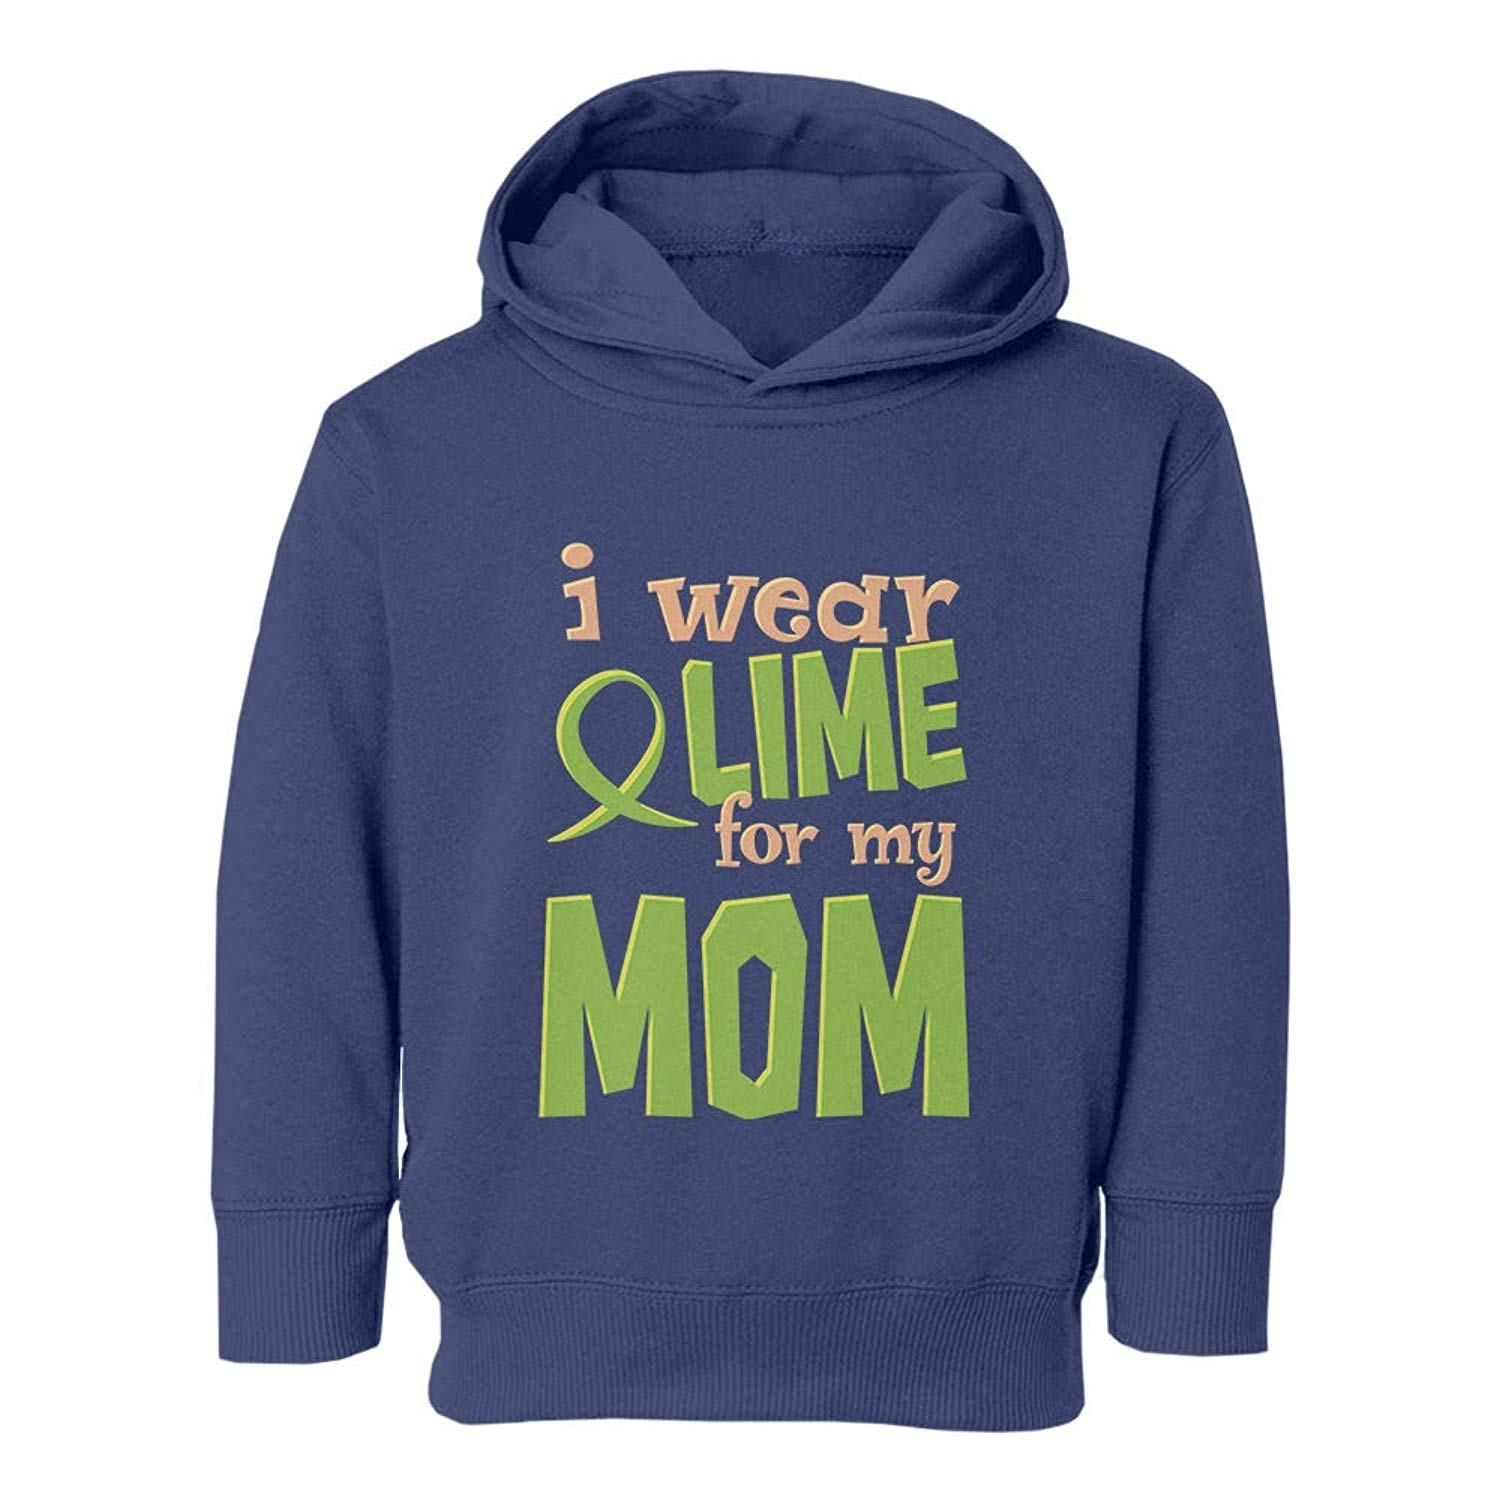 58231481c37 Get Quotations · Societee Support Wear Lime My Mom Graphic Youth   Toddler  Hoodie Sweatshirt